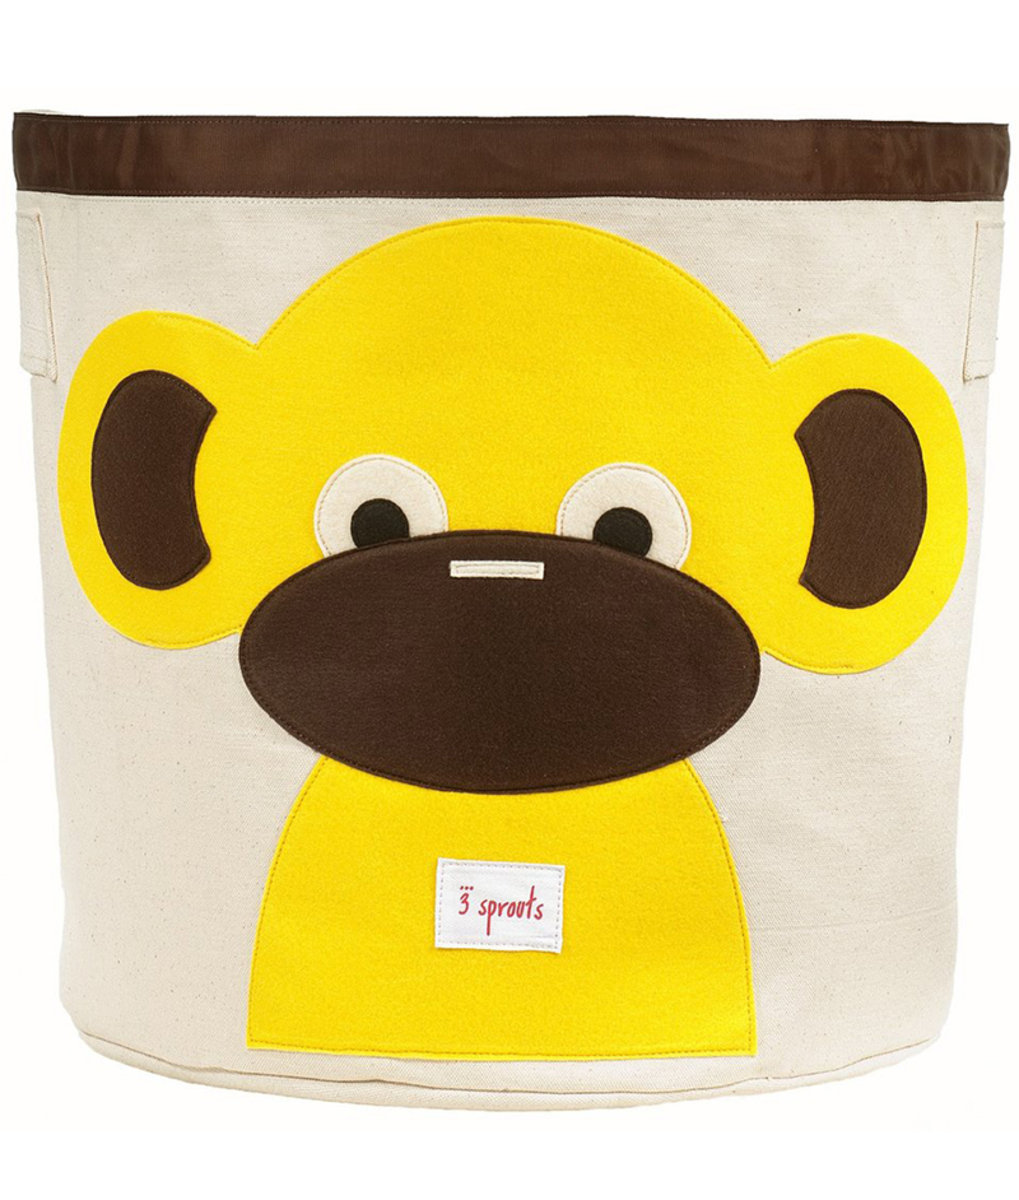 3 Sprouts Storage Bin - Yellow Monkey